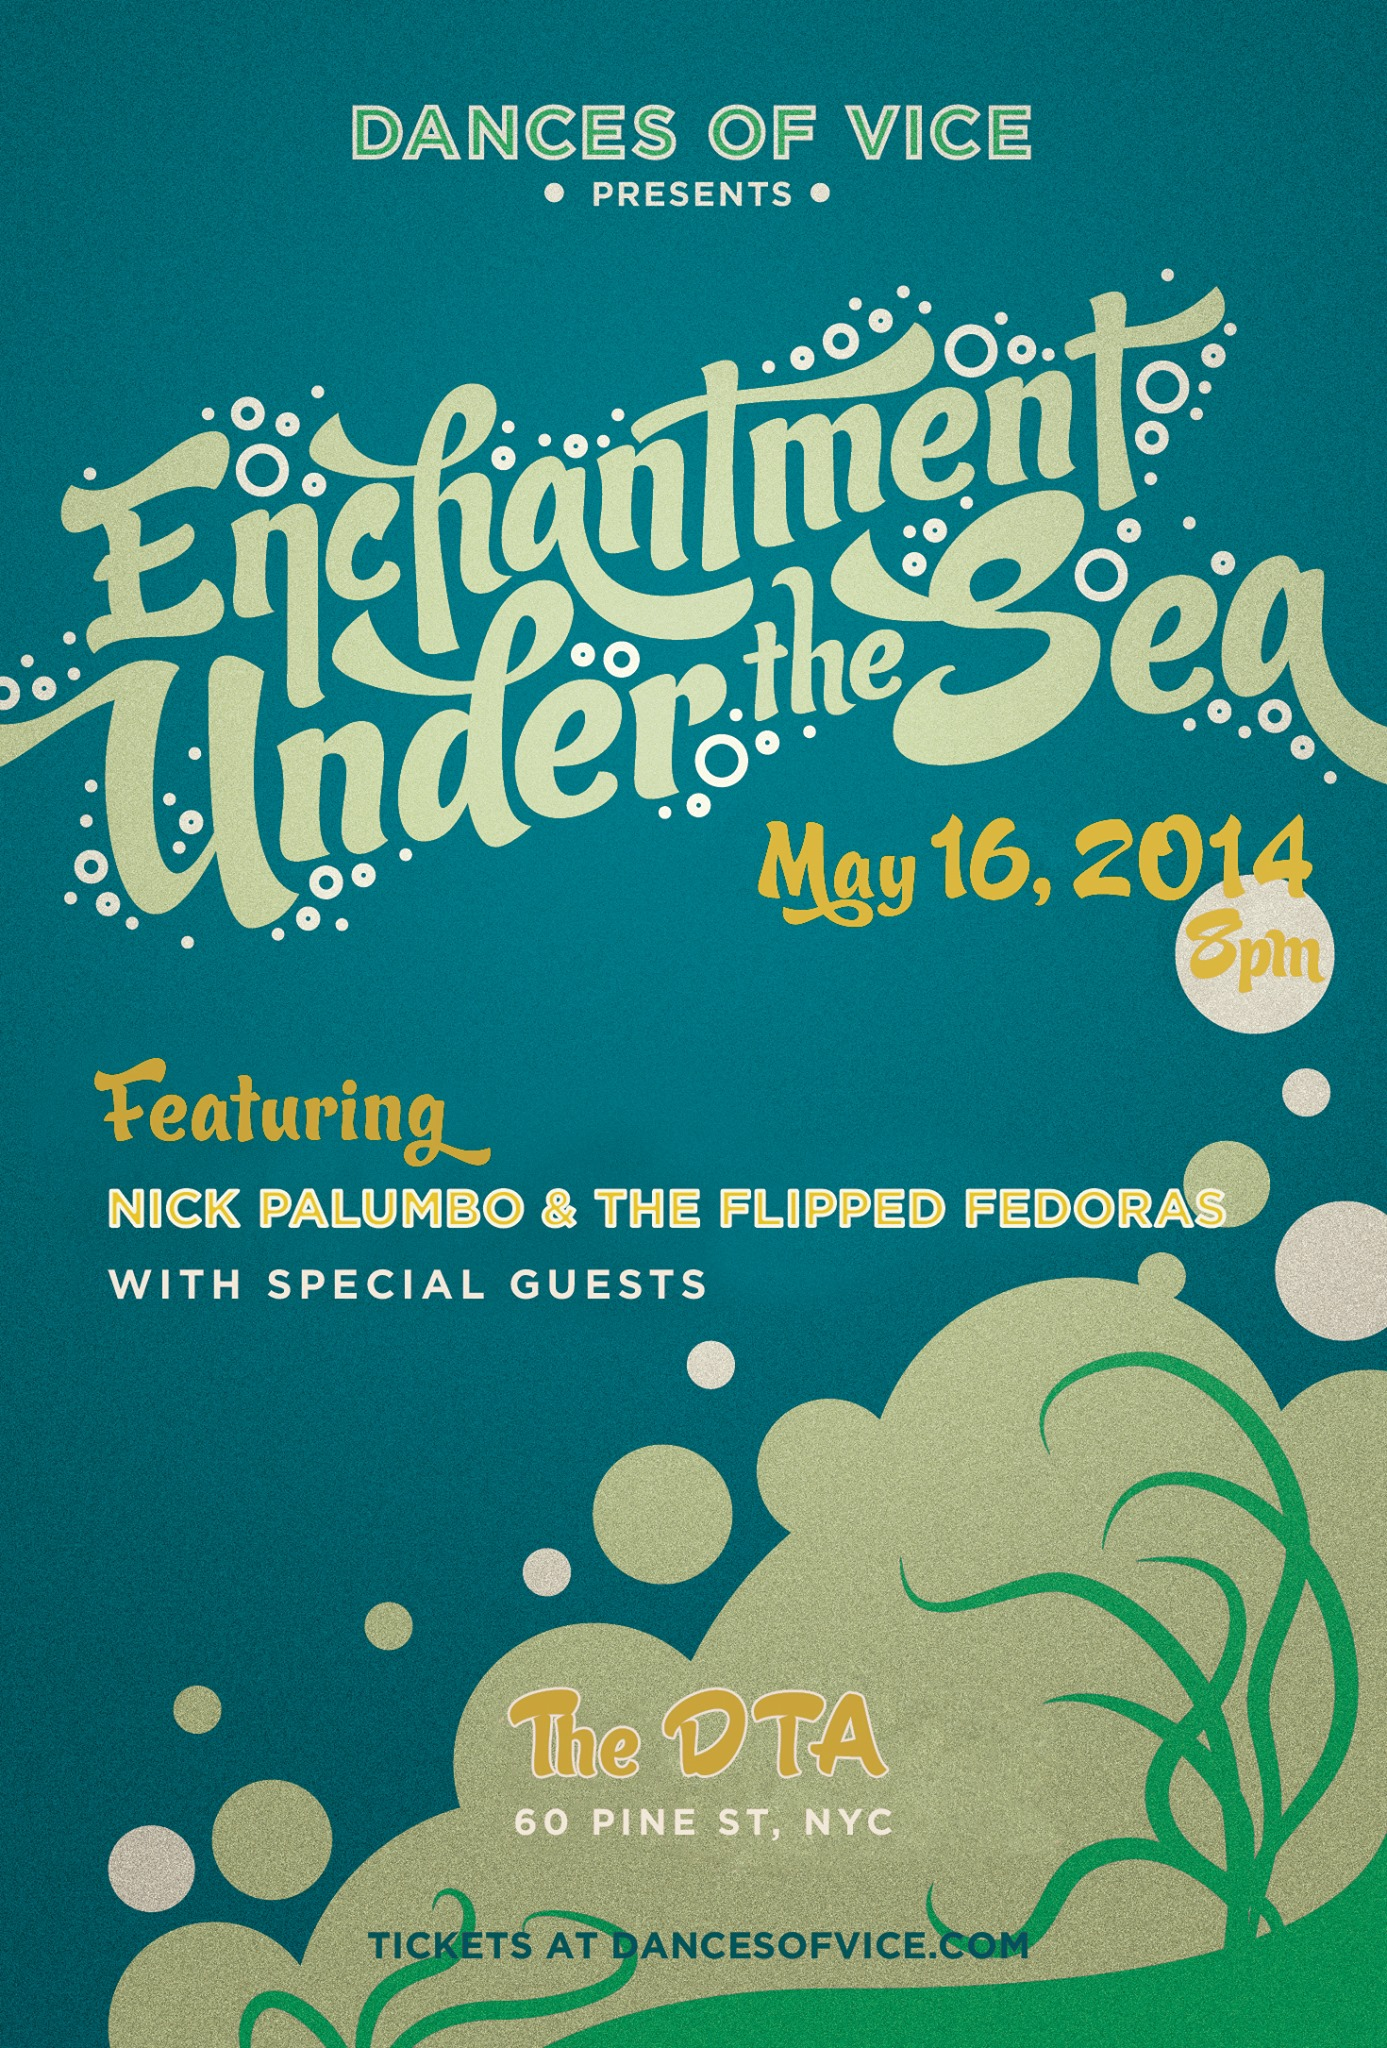 DOV Enchantment Under the Sea 2014